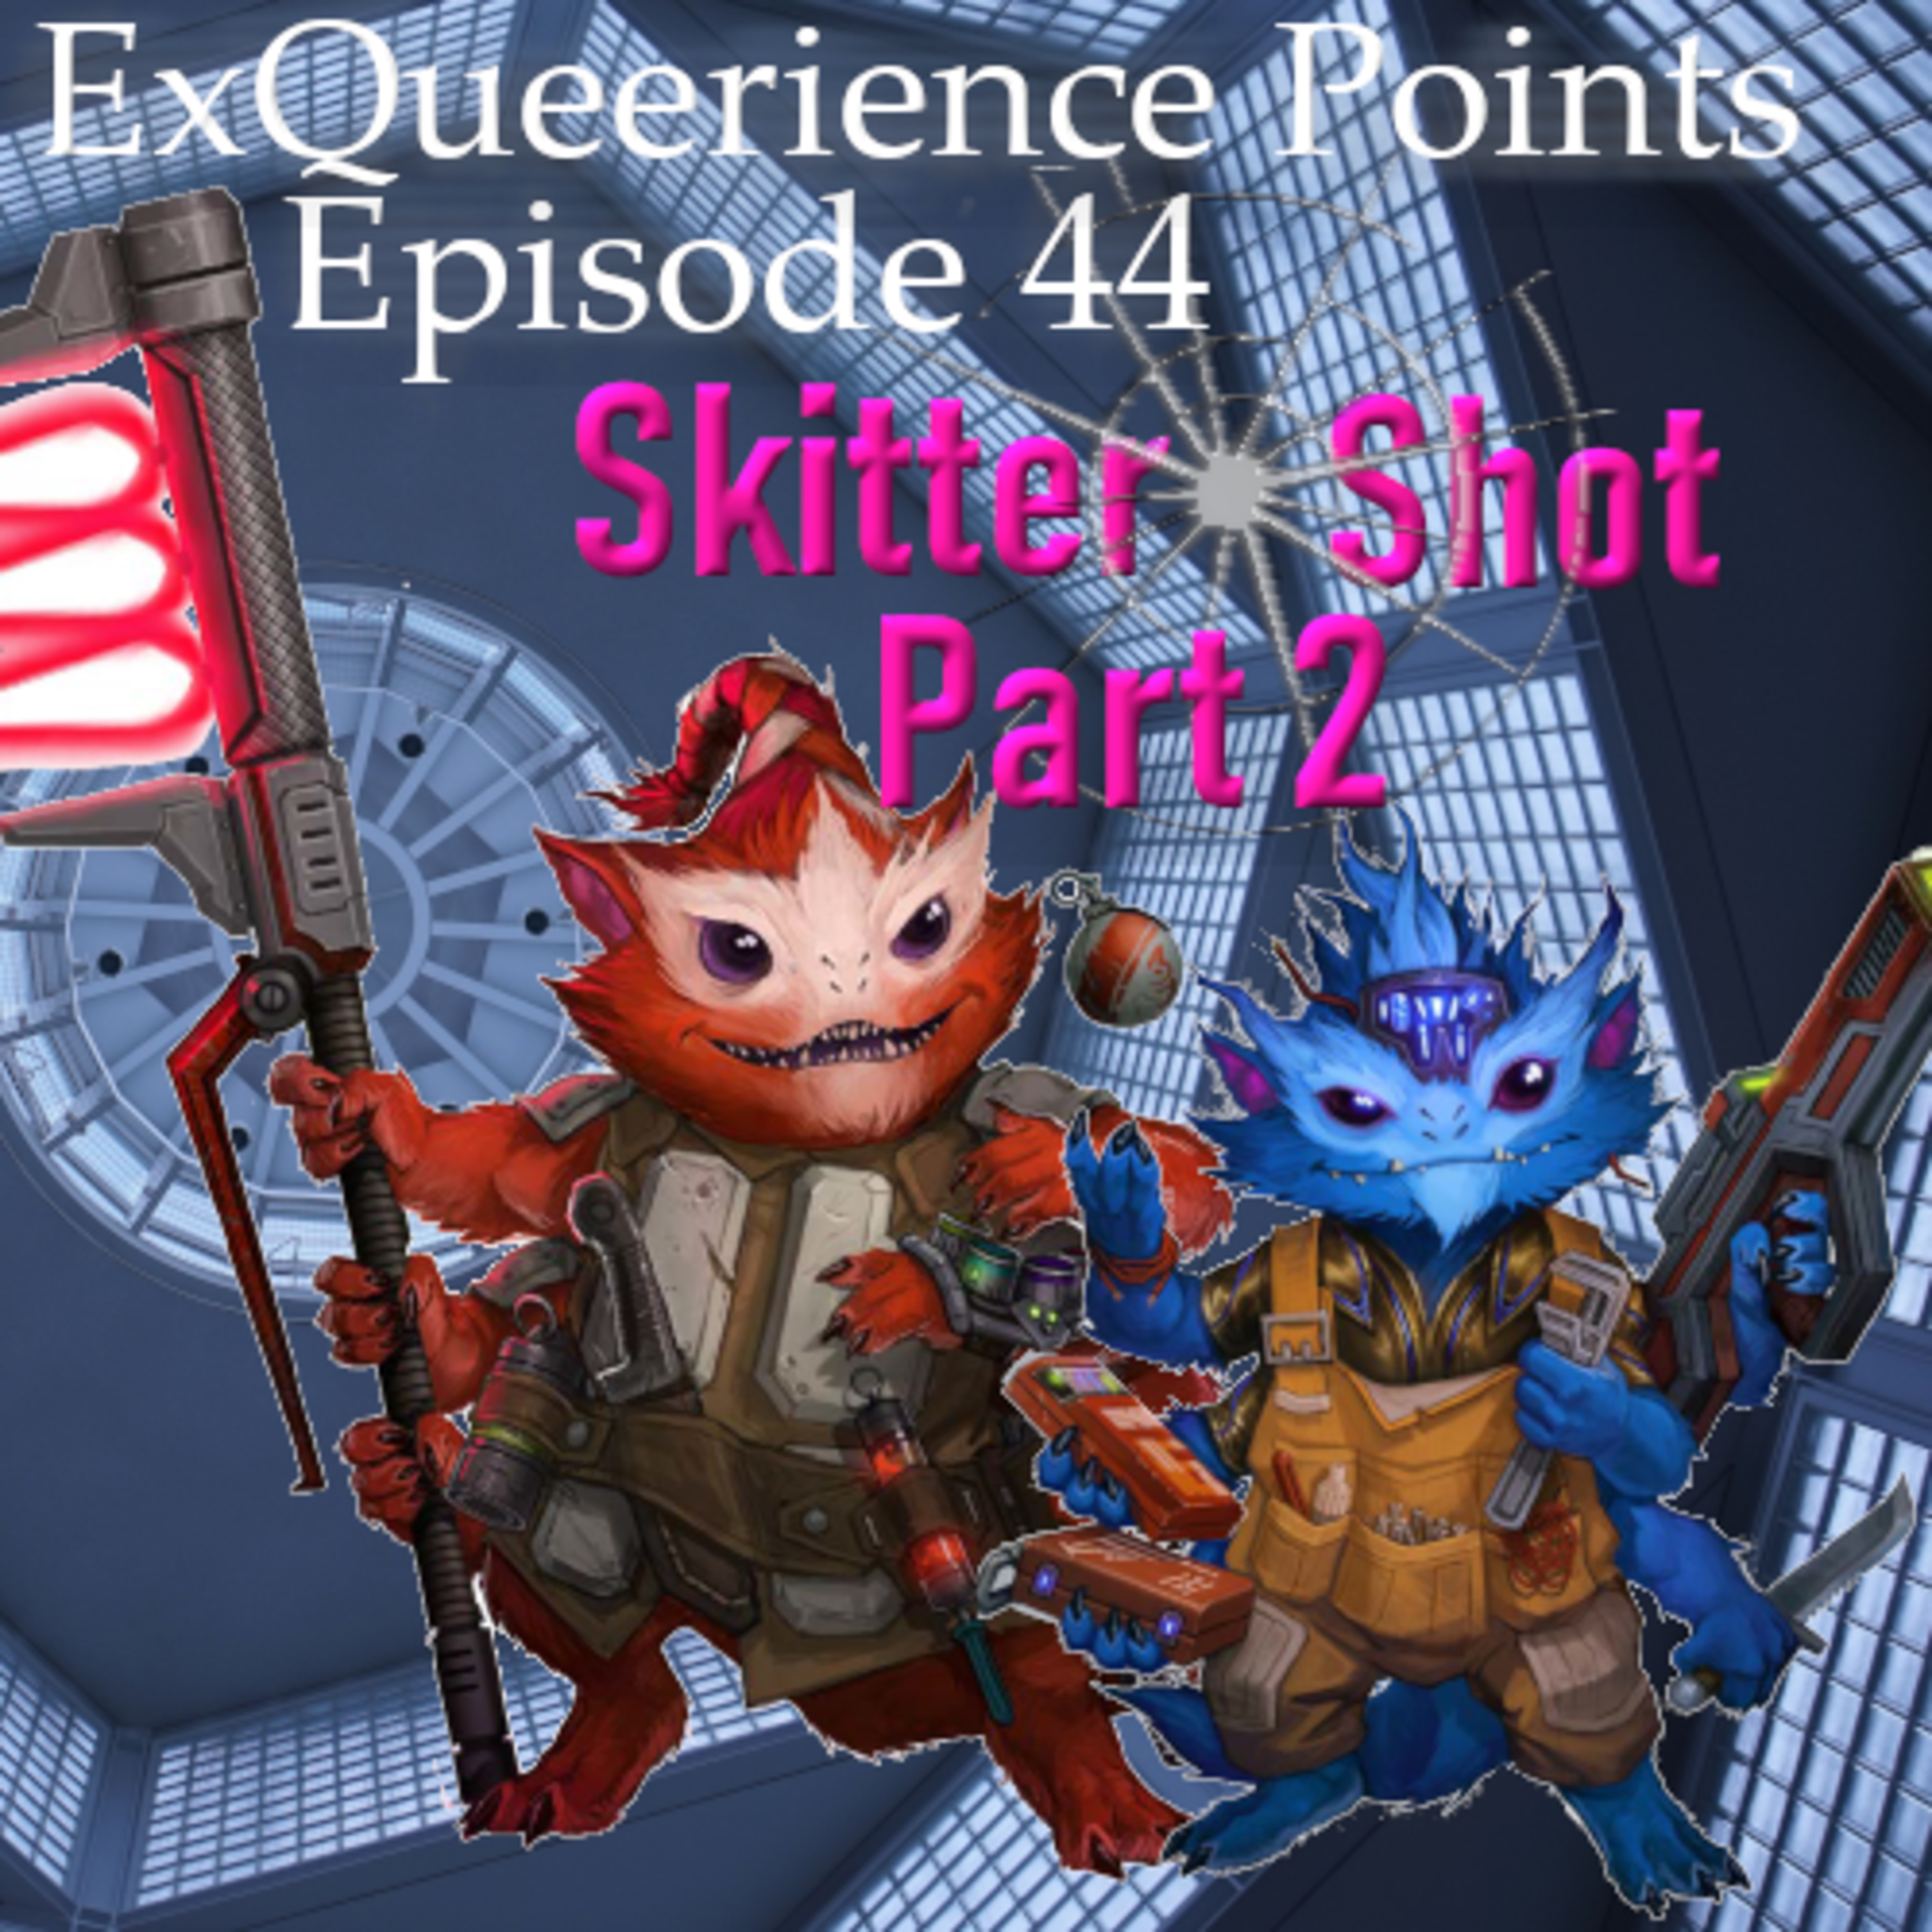 Episode 44 Skittershot Part 2